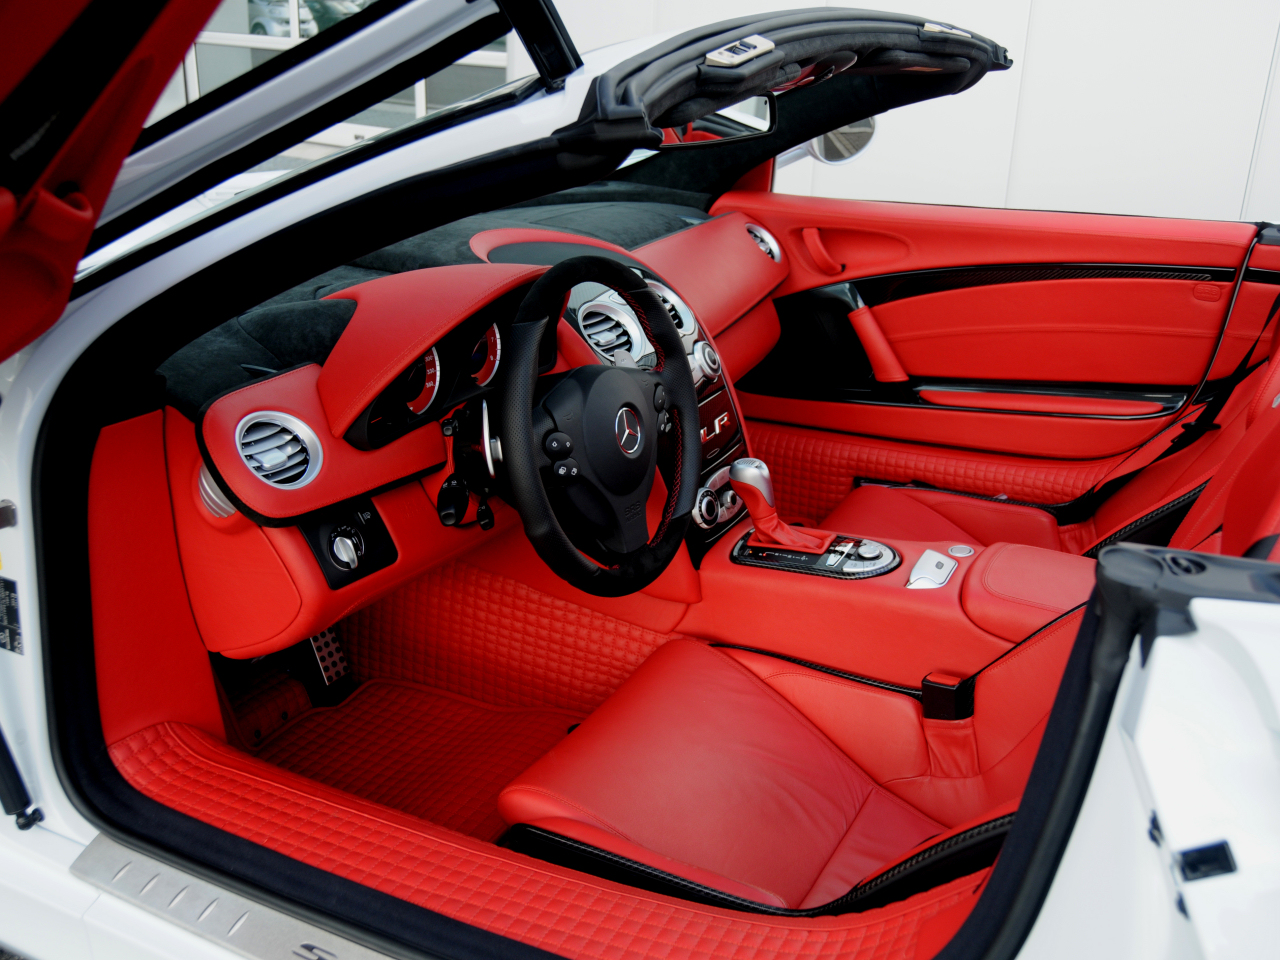 wallpaper 1024x960:Brabus McLaren Mercedes SLR - interior